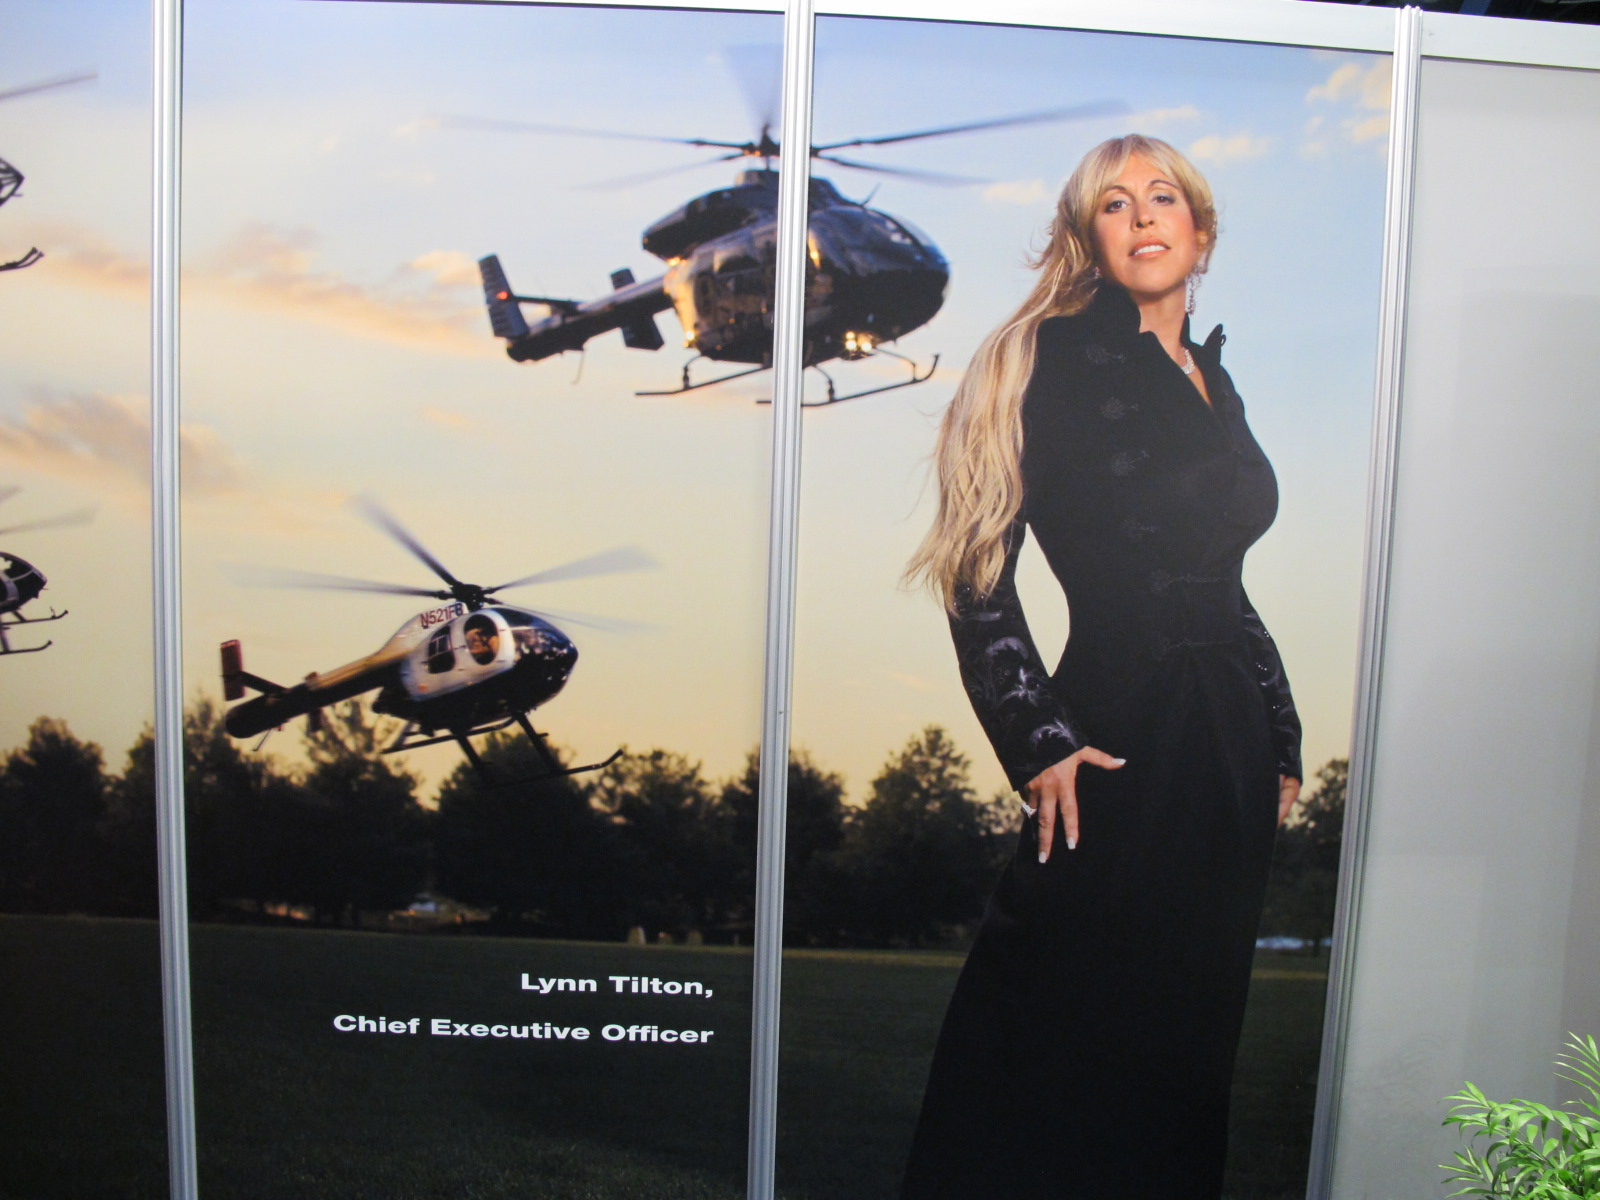 Wall poster, Lynn Tilton, CEO MD Helicopters